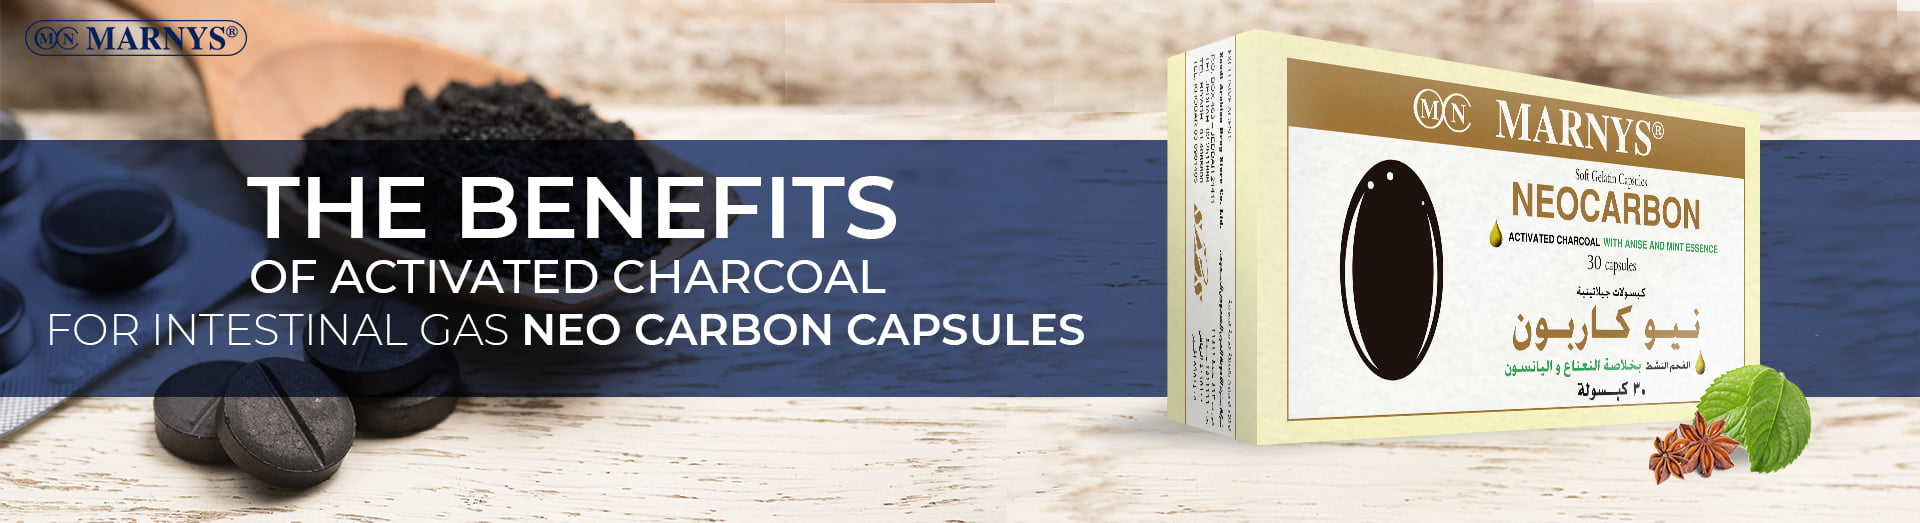 Activated Charcoal For Intestinal Gas Neo Carbon Capsules - Activated charcoal benefits